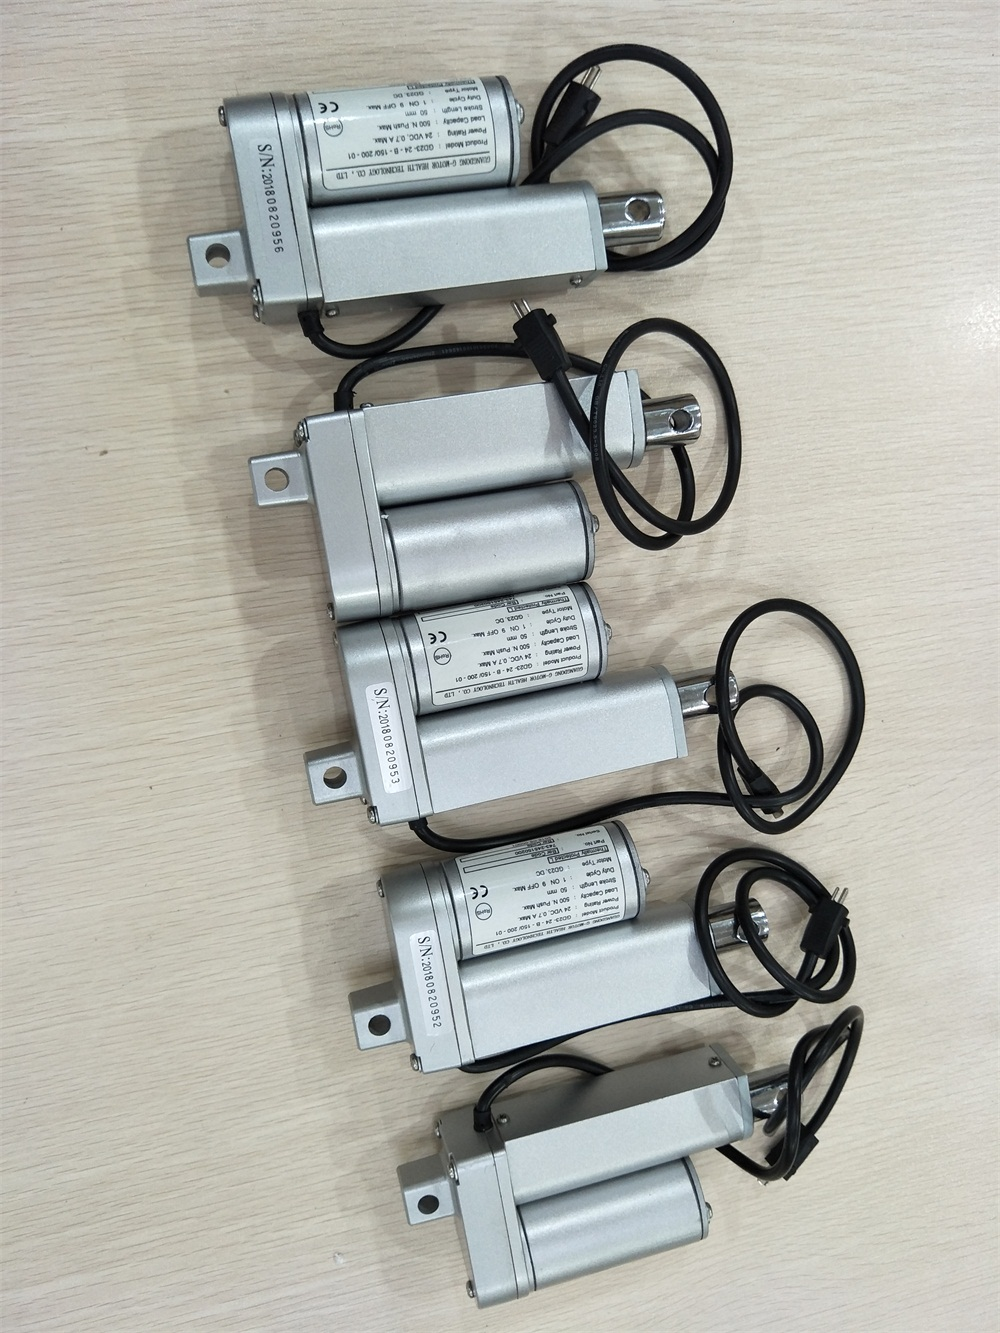 24V linear actuator